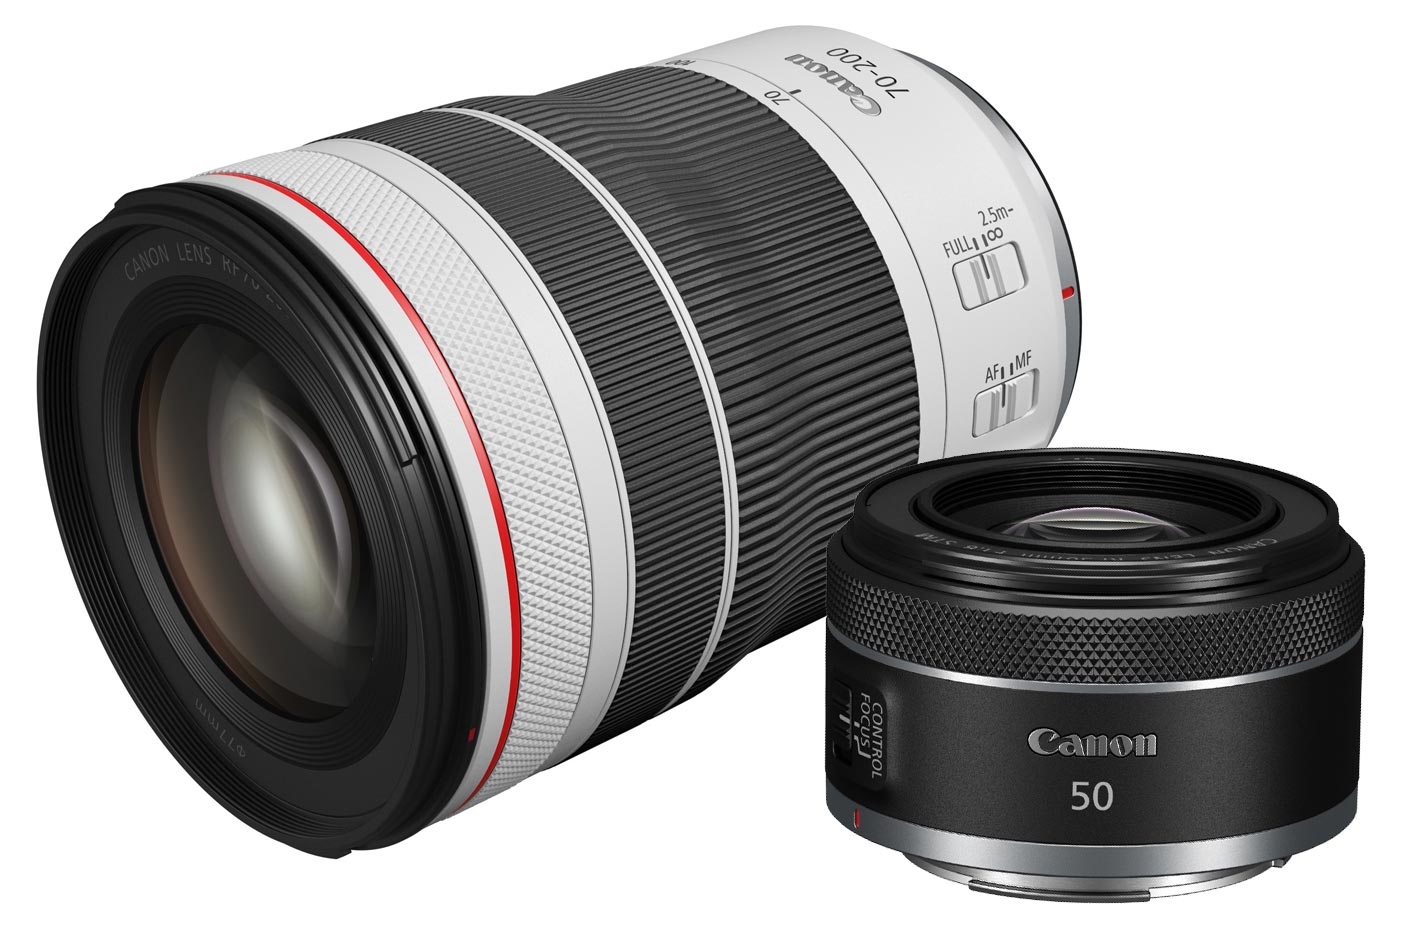 Canon RF 70-200mm F4L IS USM: world's shortest and lightest f/4 lens